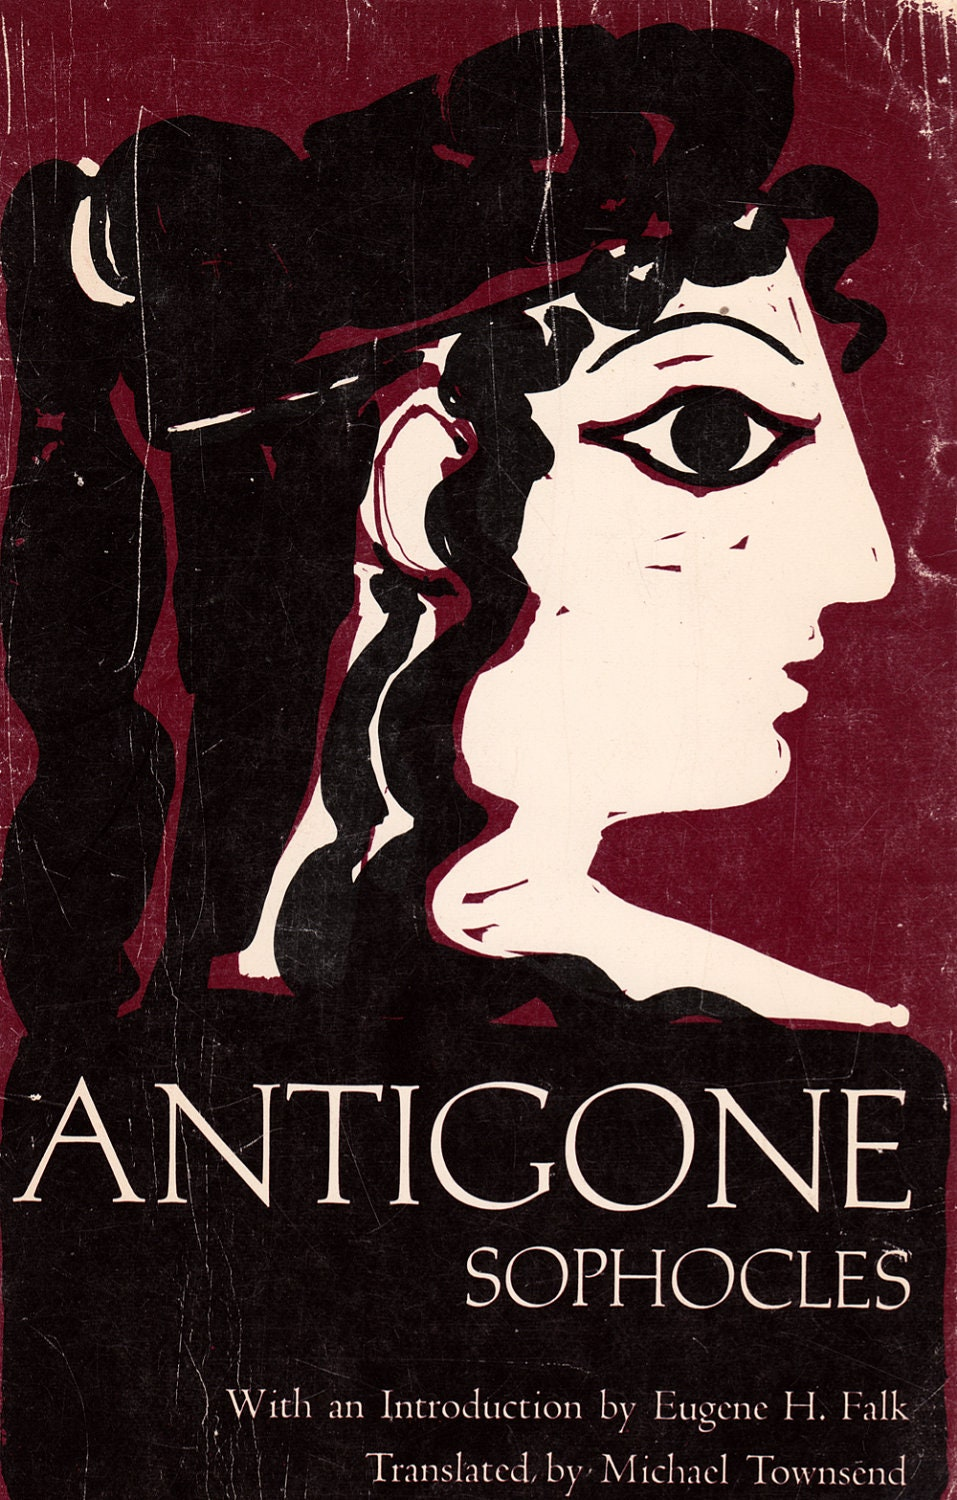 """essays on sophocles antigone Free essay: sophocles' play """"antigone"""" illustrates the conflict between obeying  human and divine law the play opens after oedipus' two sons eteocles and."""